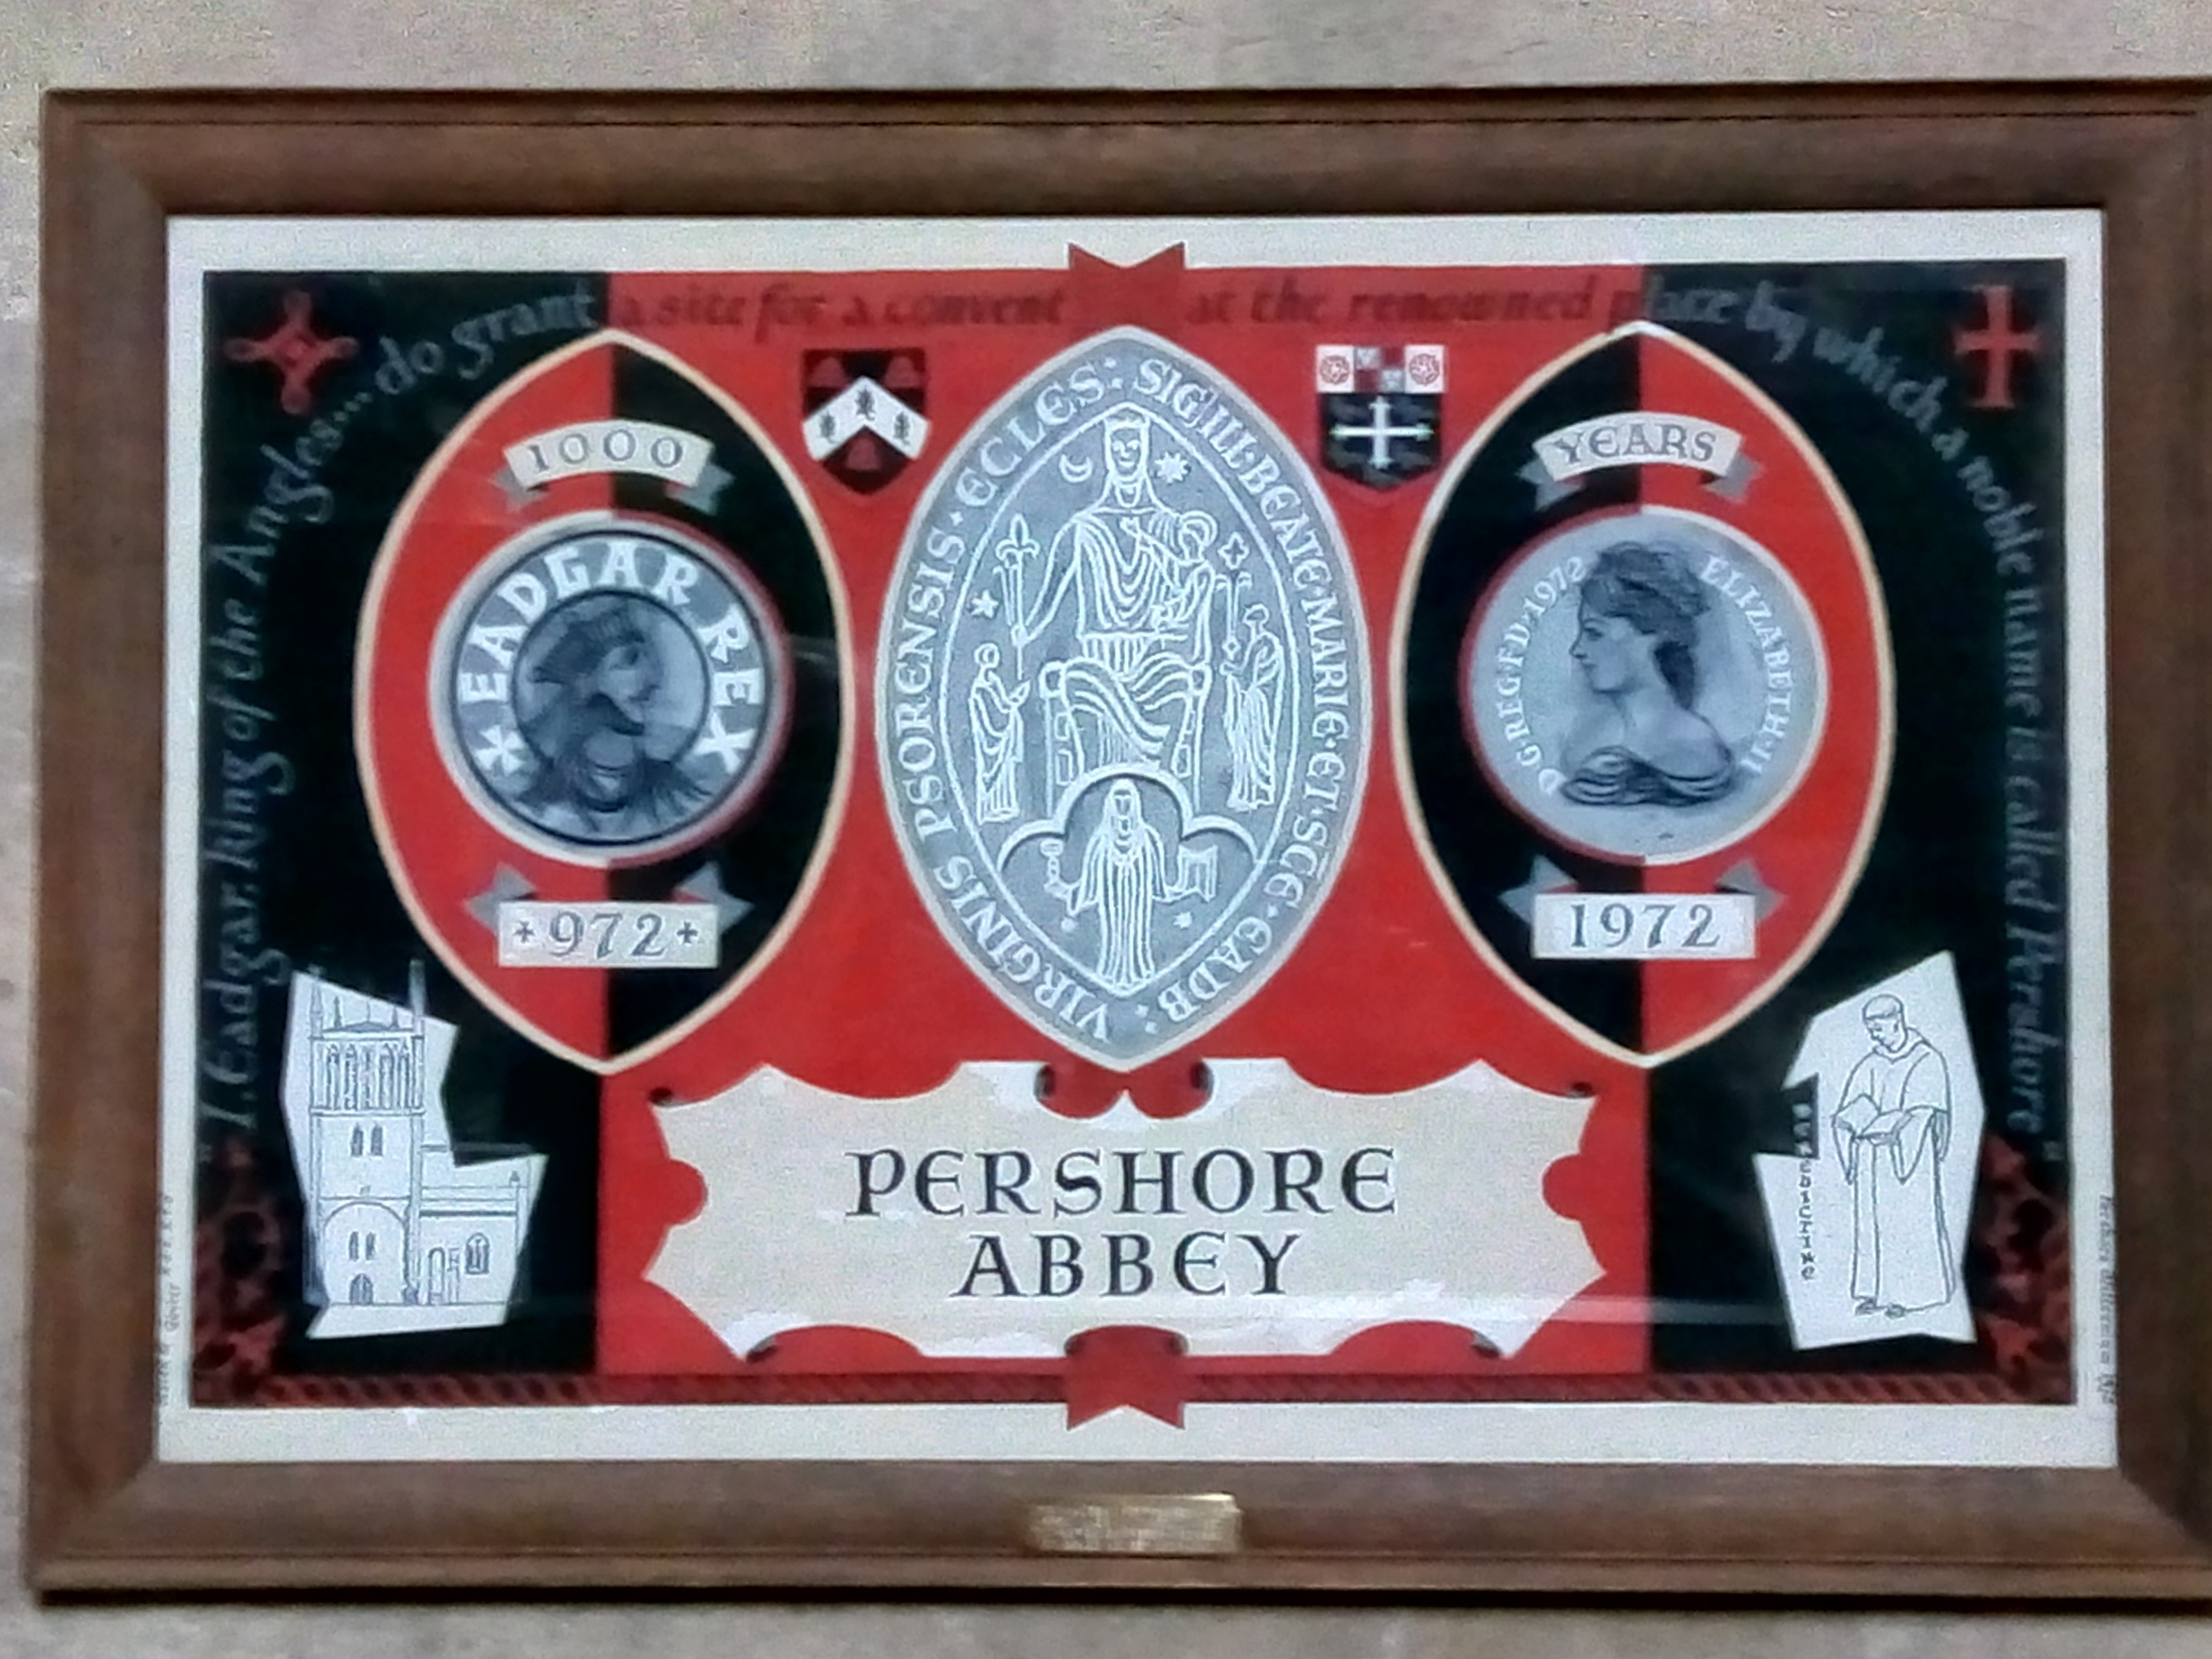 Pershore Abbey Plaque